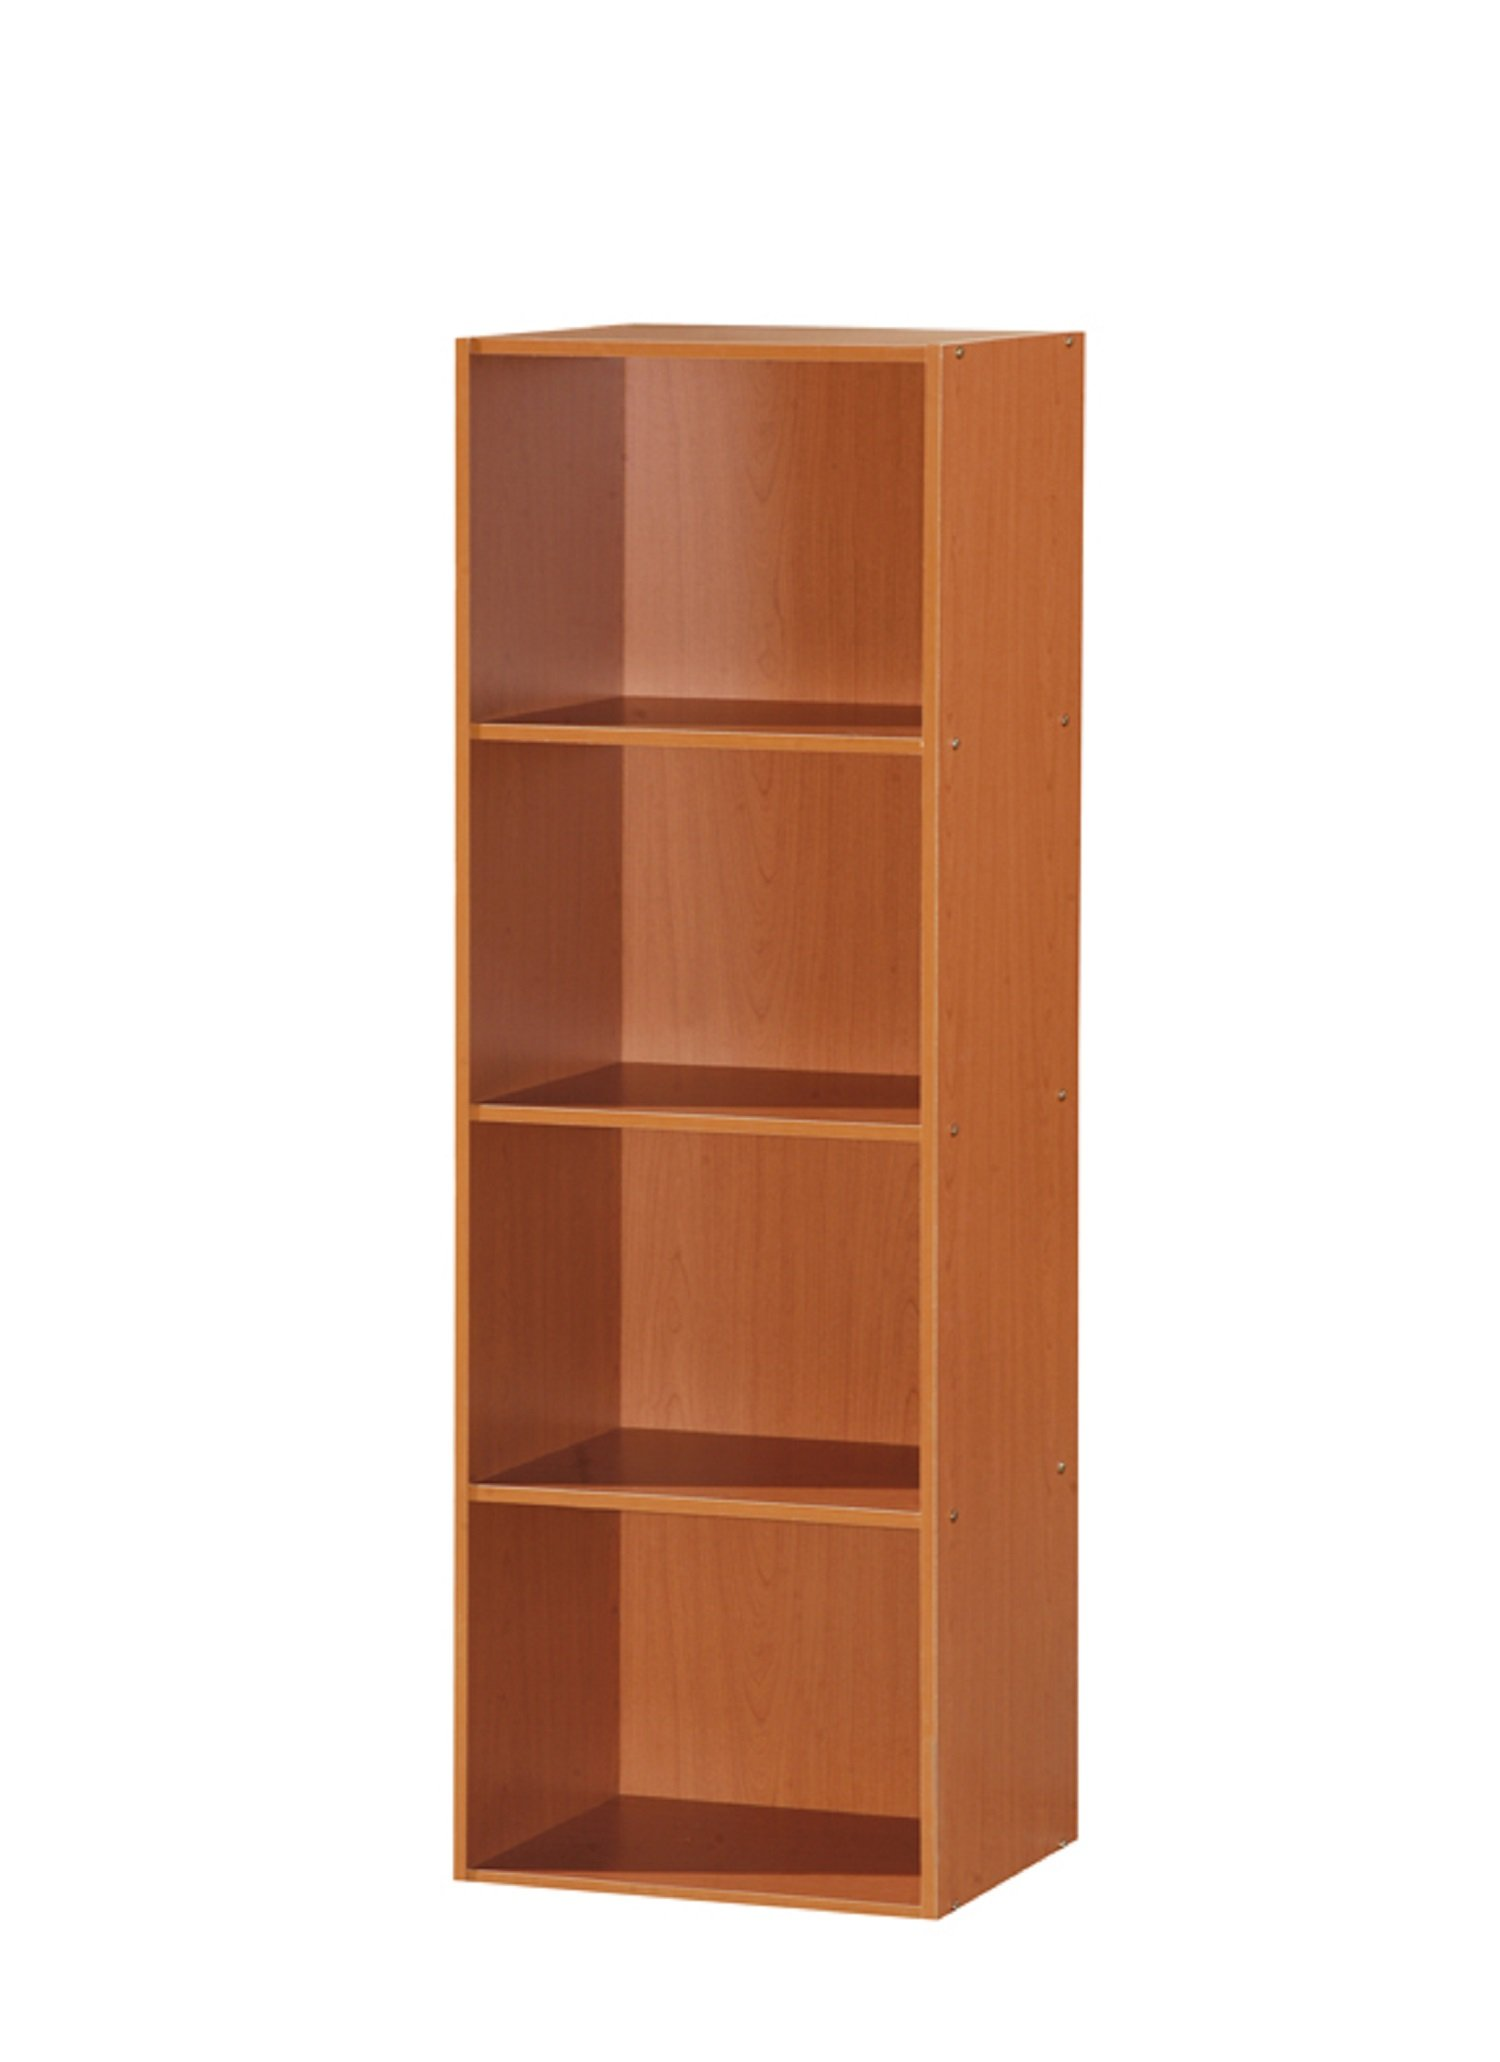 HODEDAH IMPORT Hodedah 4 Shelve Bookcase, Cherry